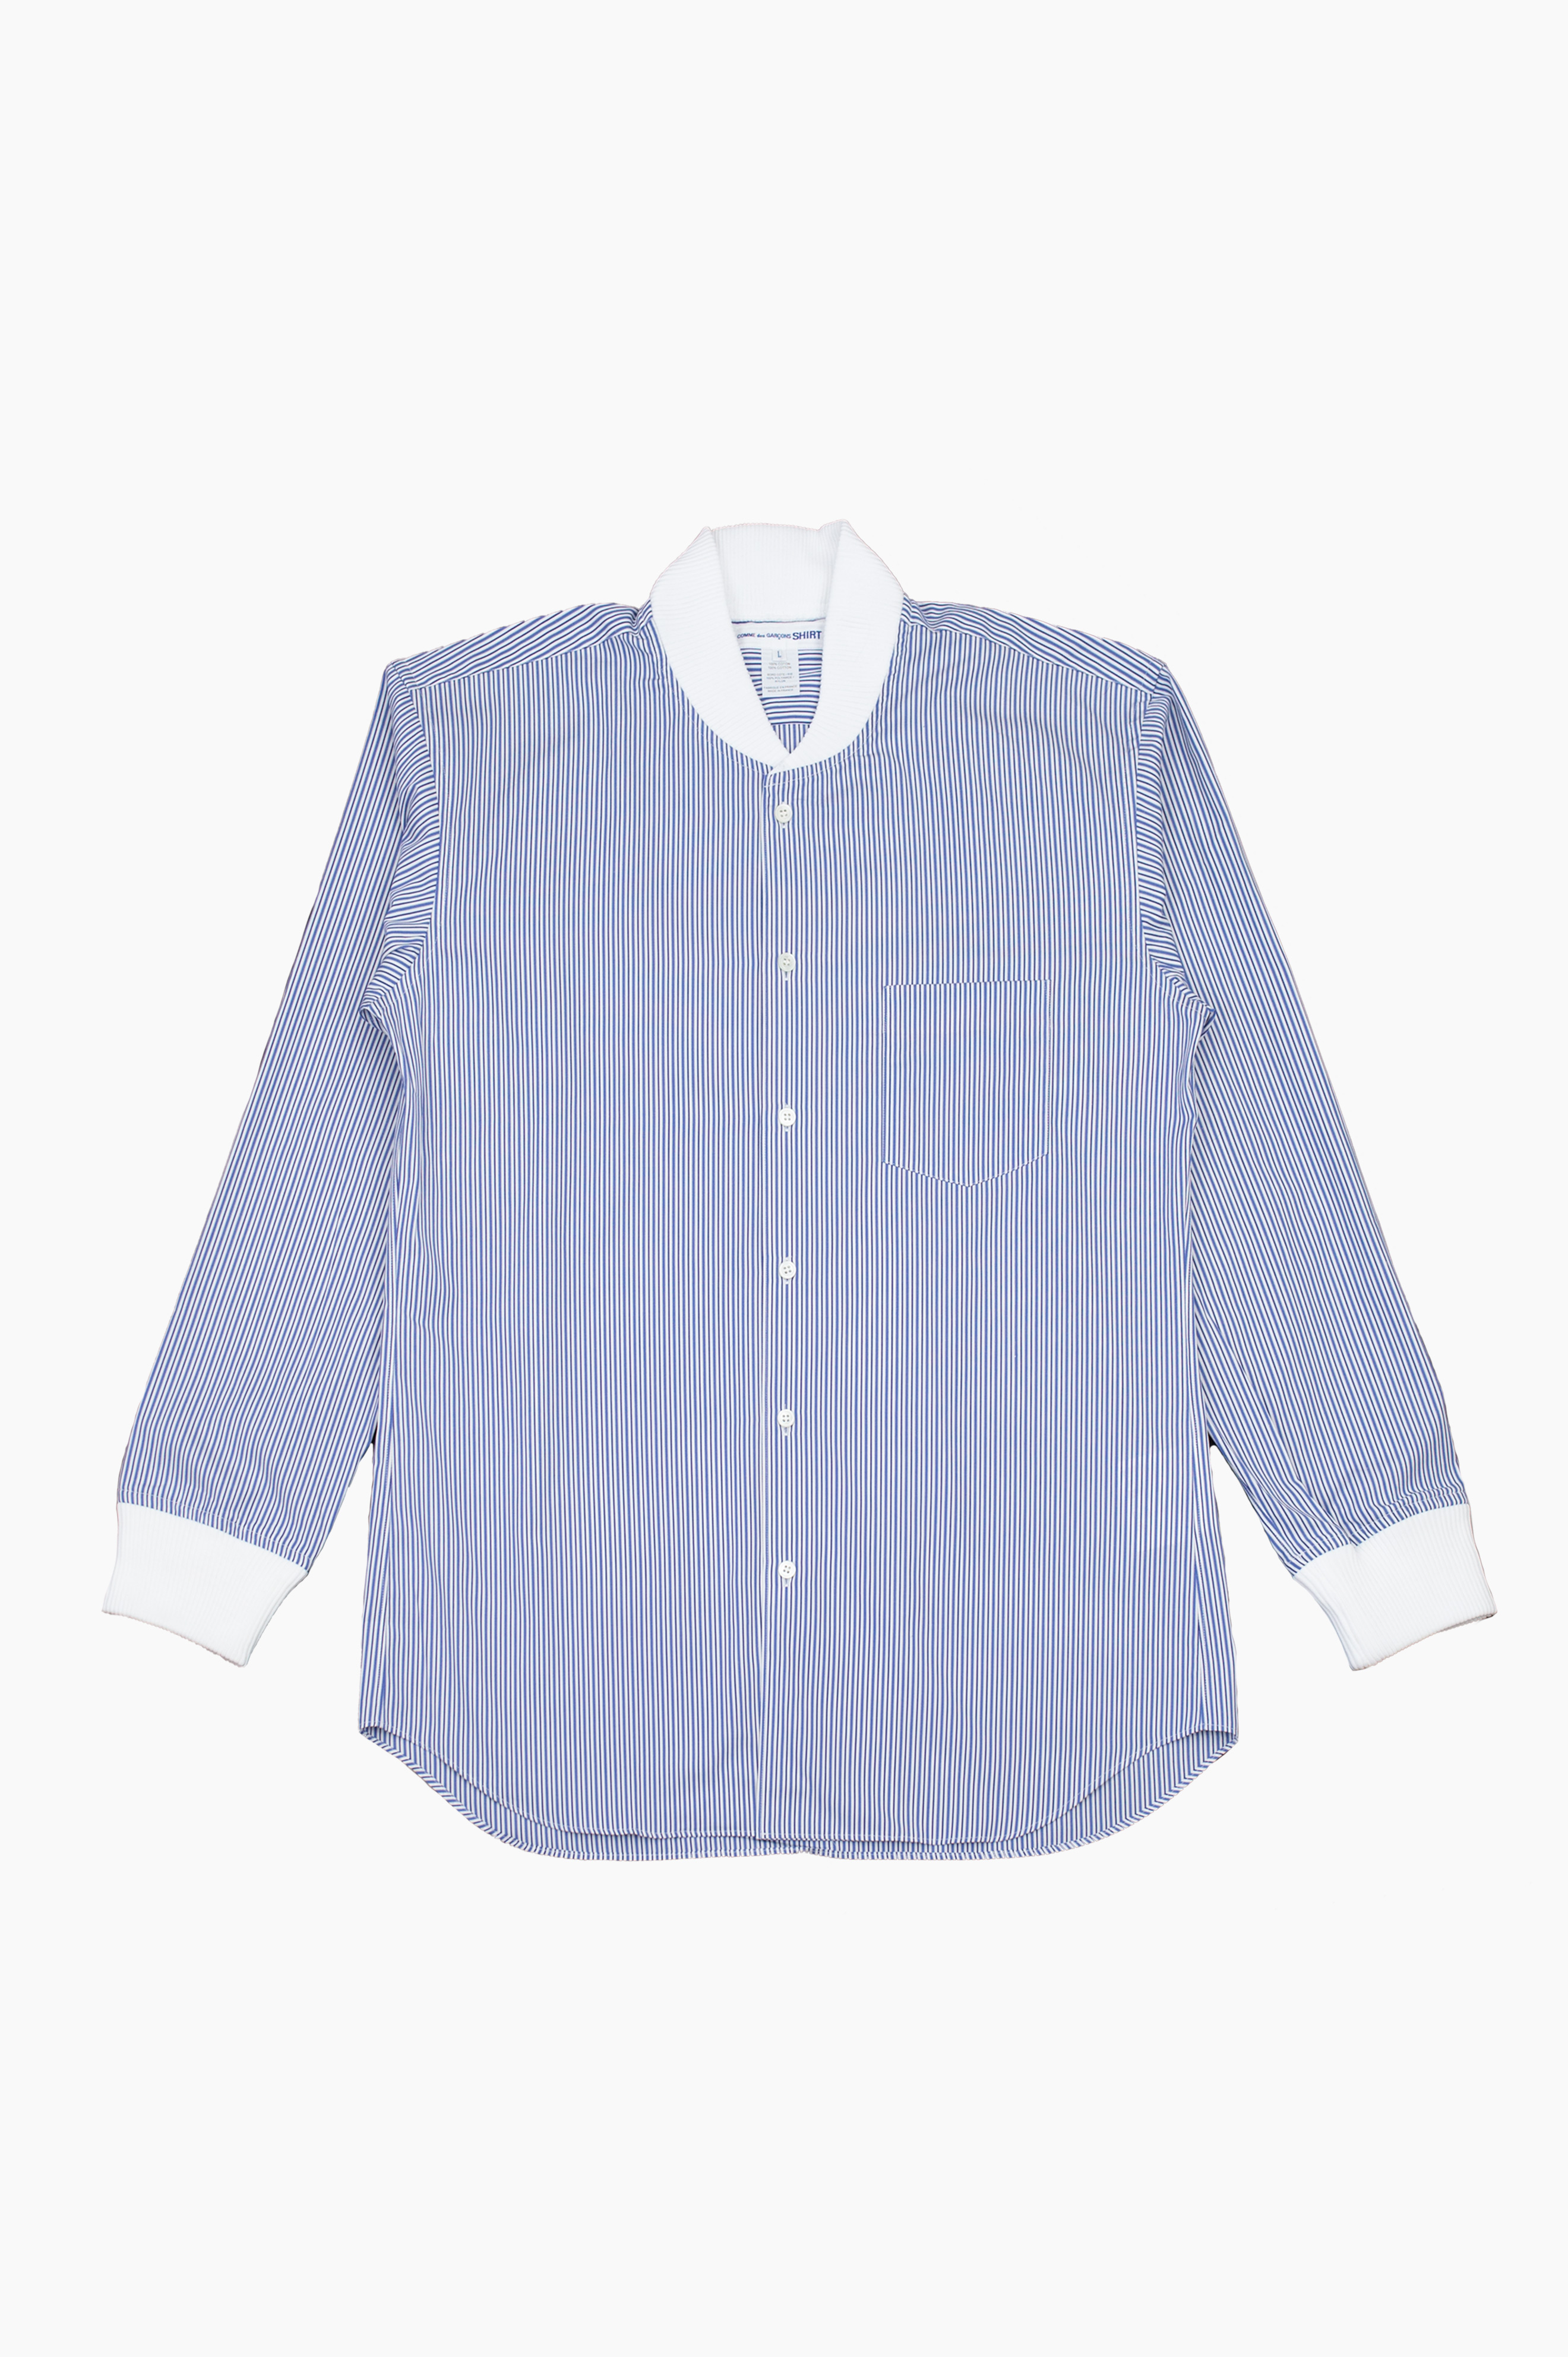 Ribbed Cuffs Shirt Blue Stripes